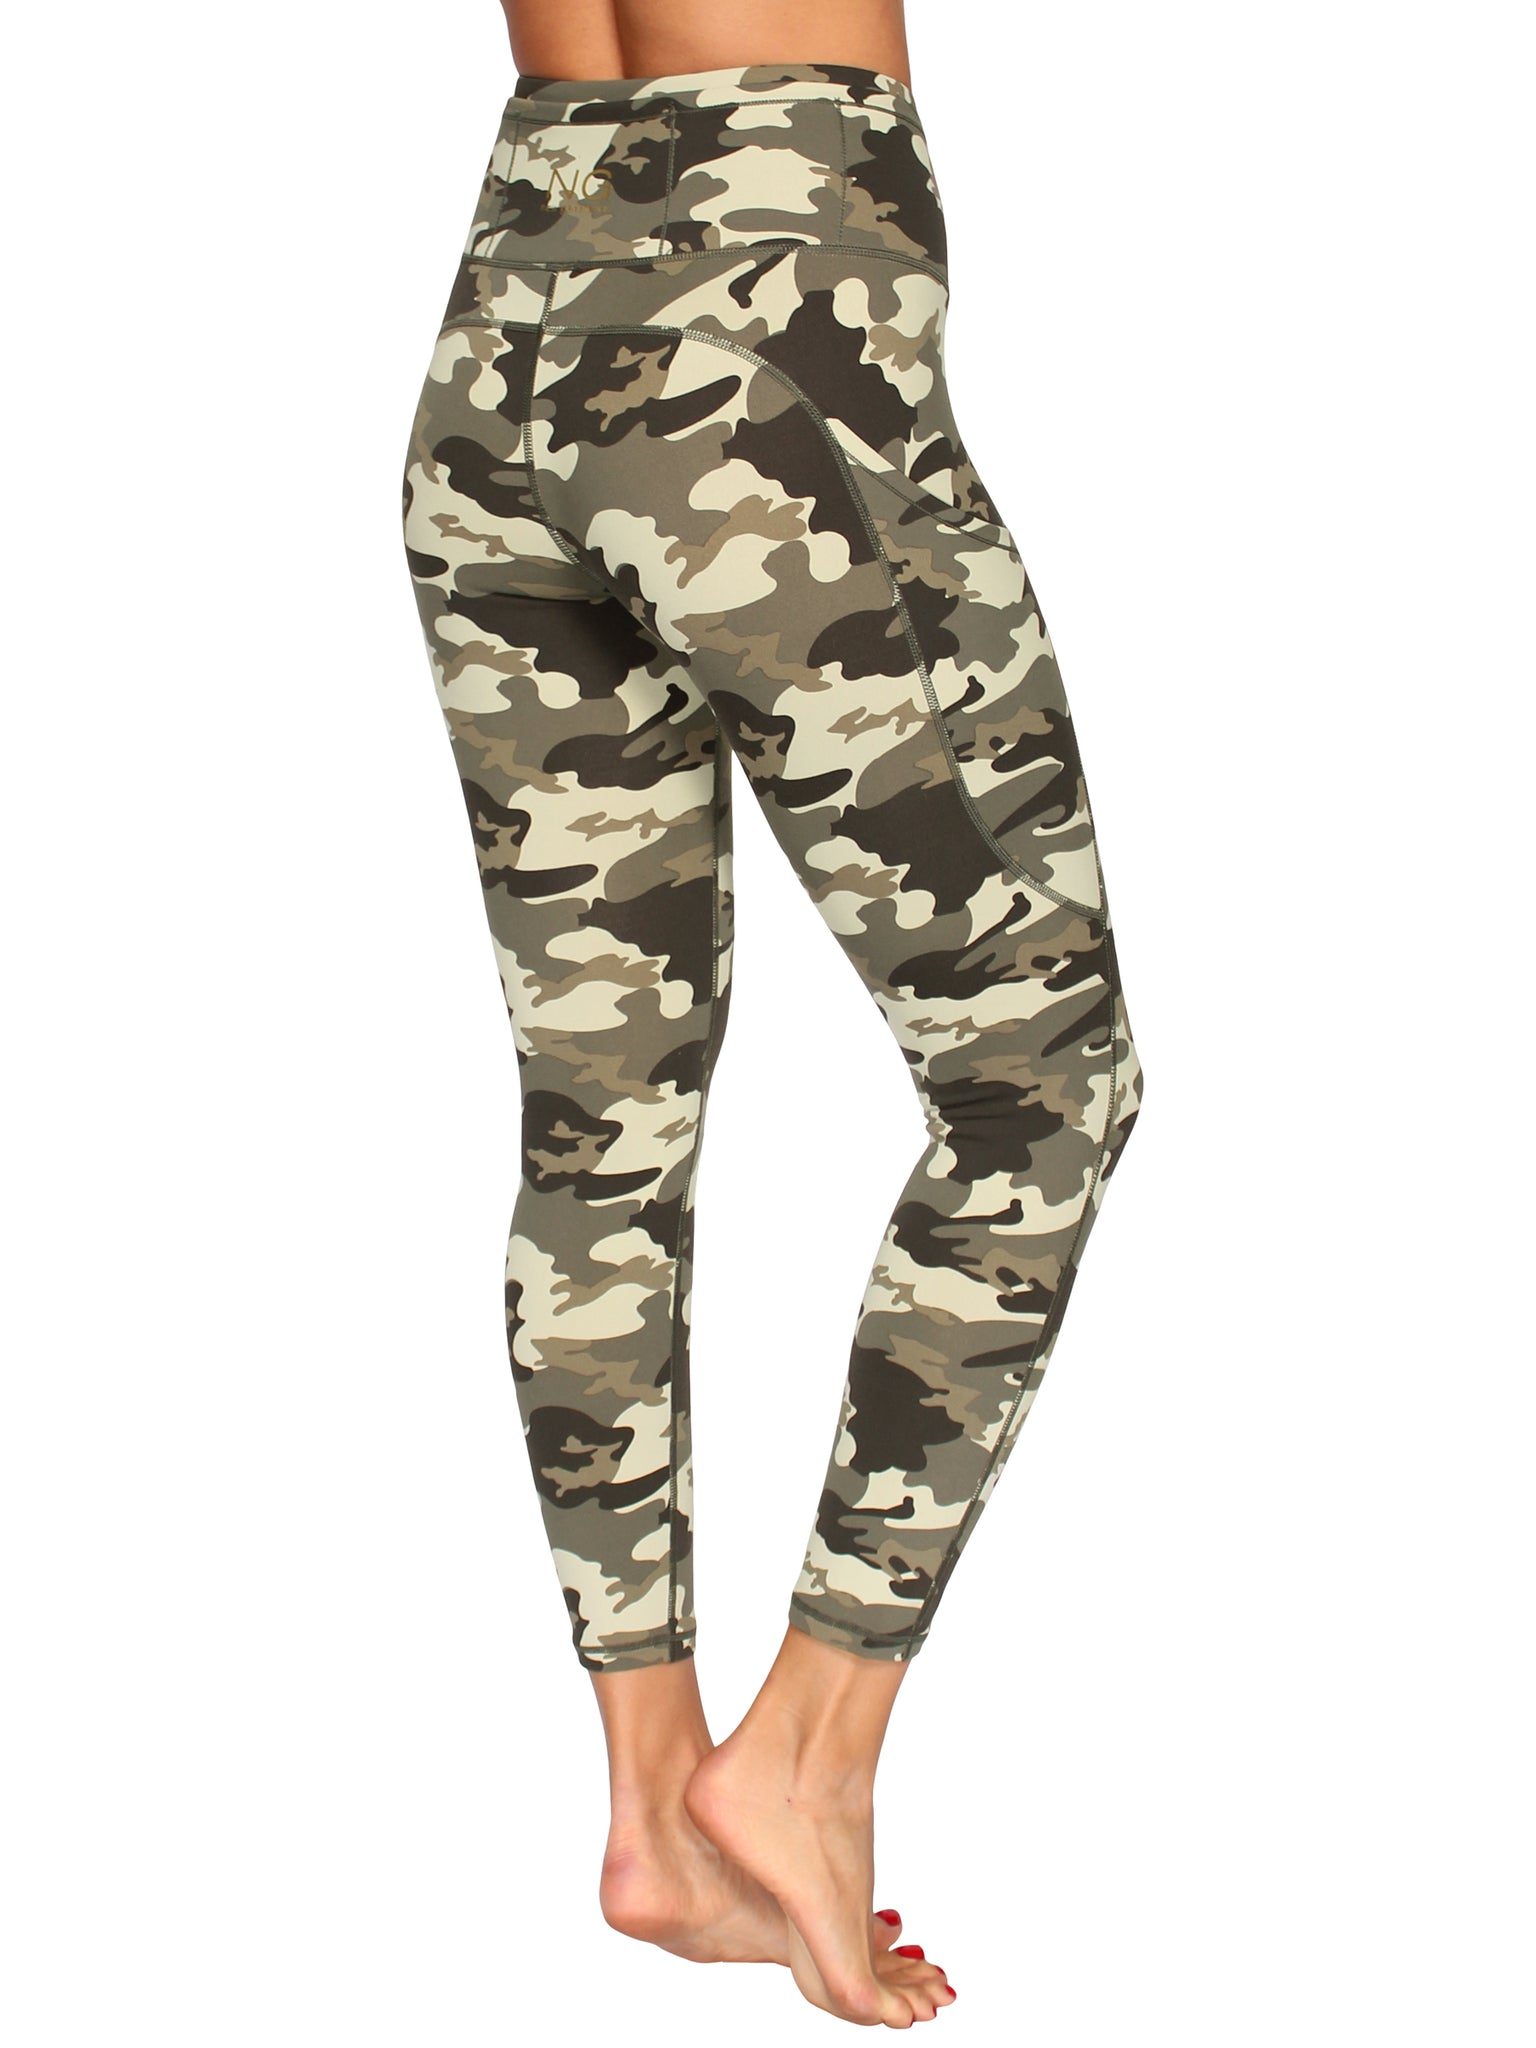 HIGH-RISE SUPPORT ANKLE BITER TIGHTS - CAMO